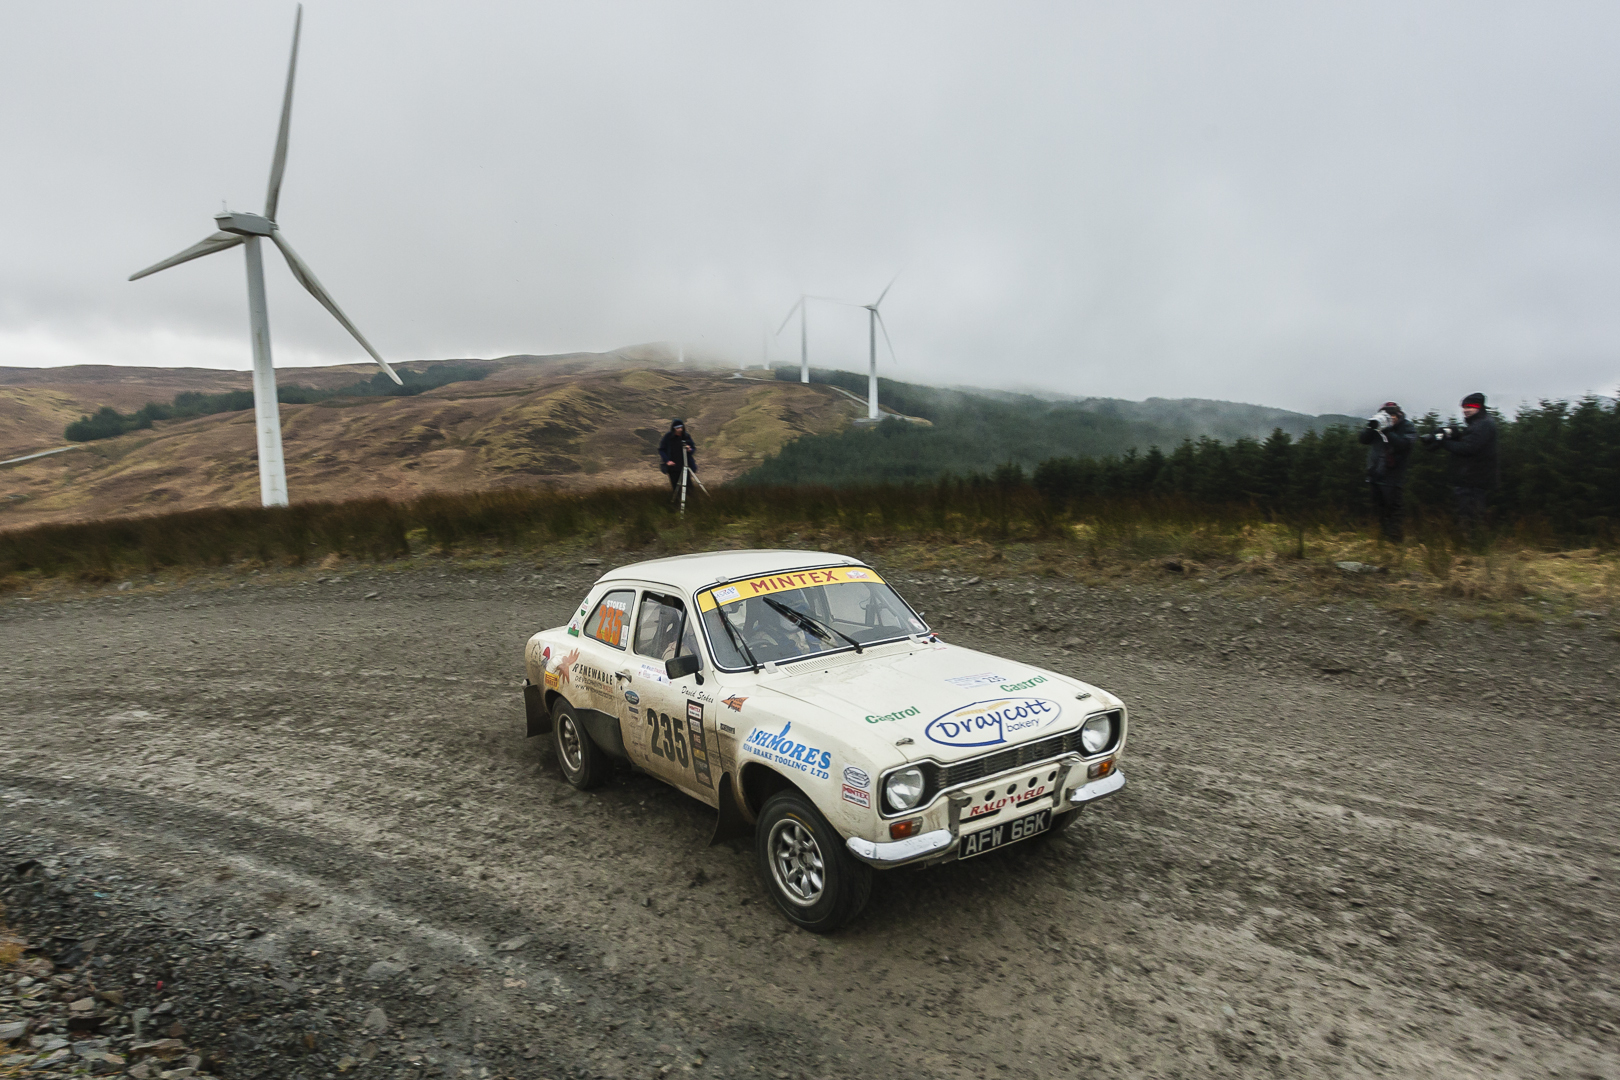 David Stokes in action during the Mid Wales Historic Stages. Picture by Chris Huish